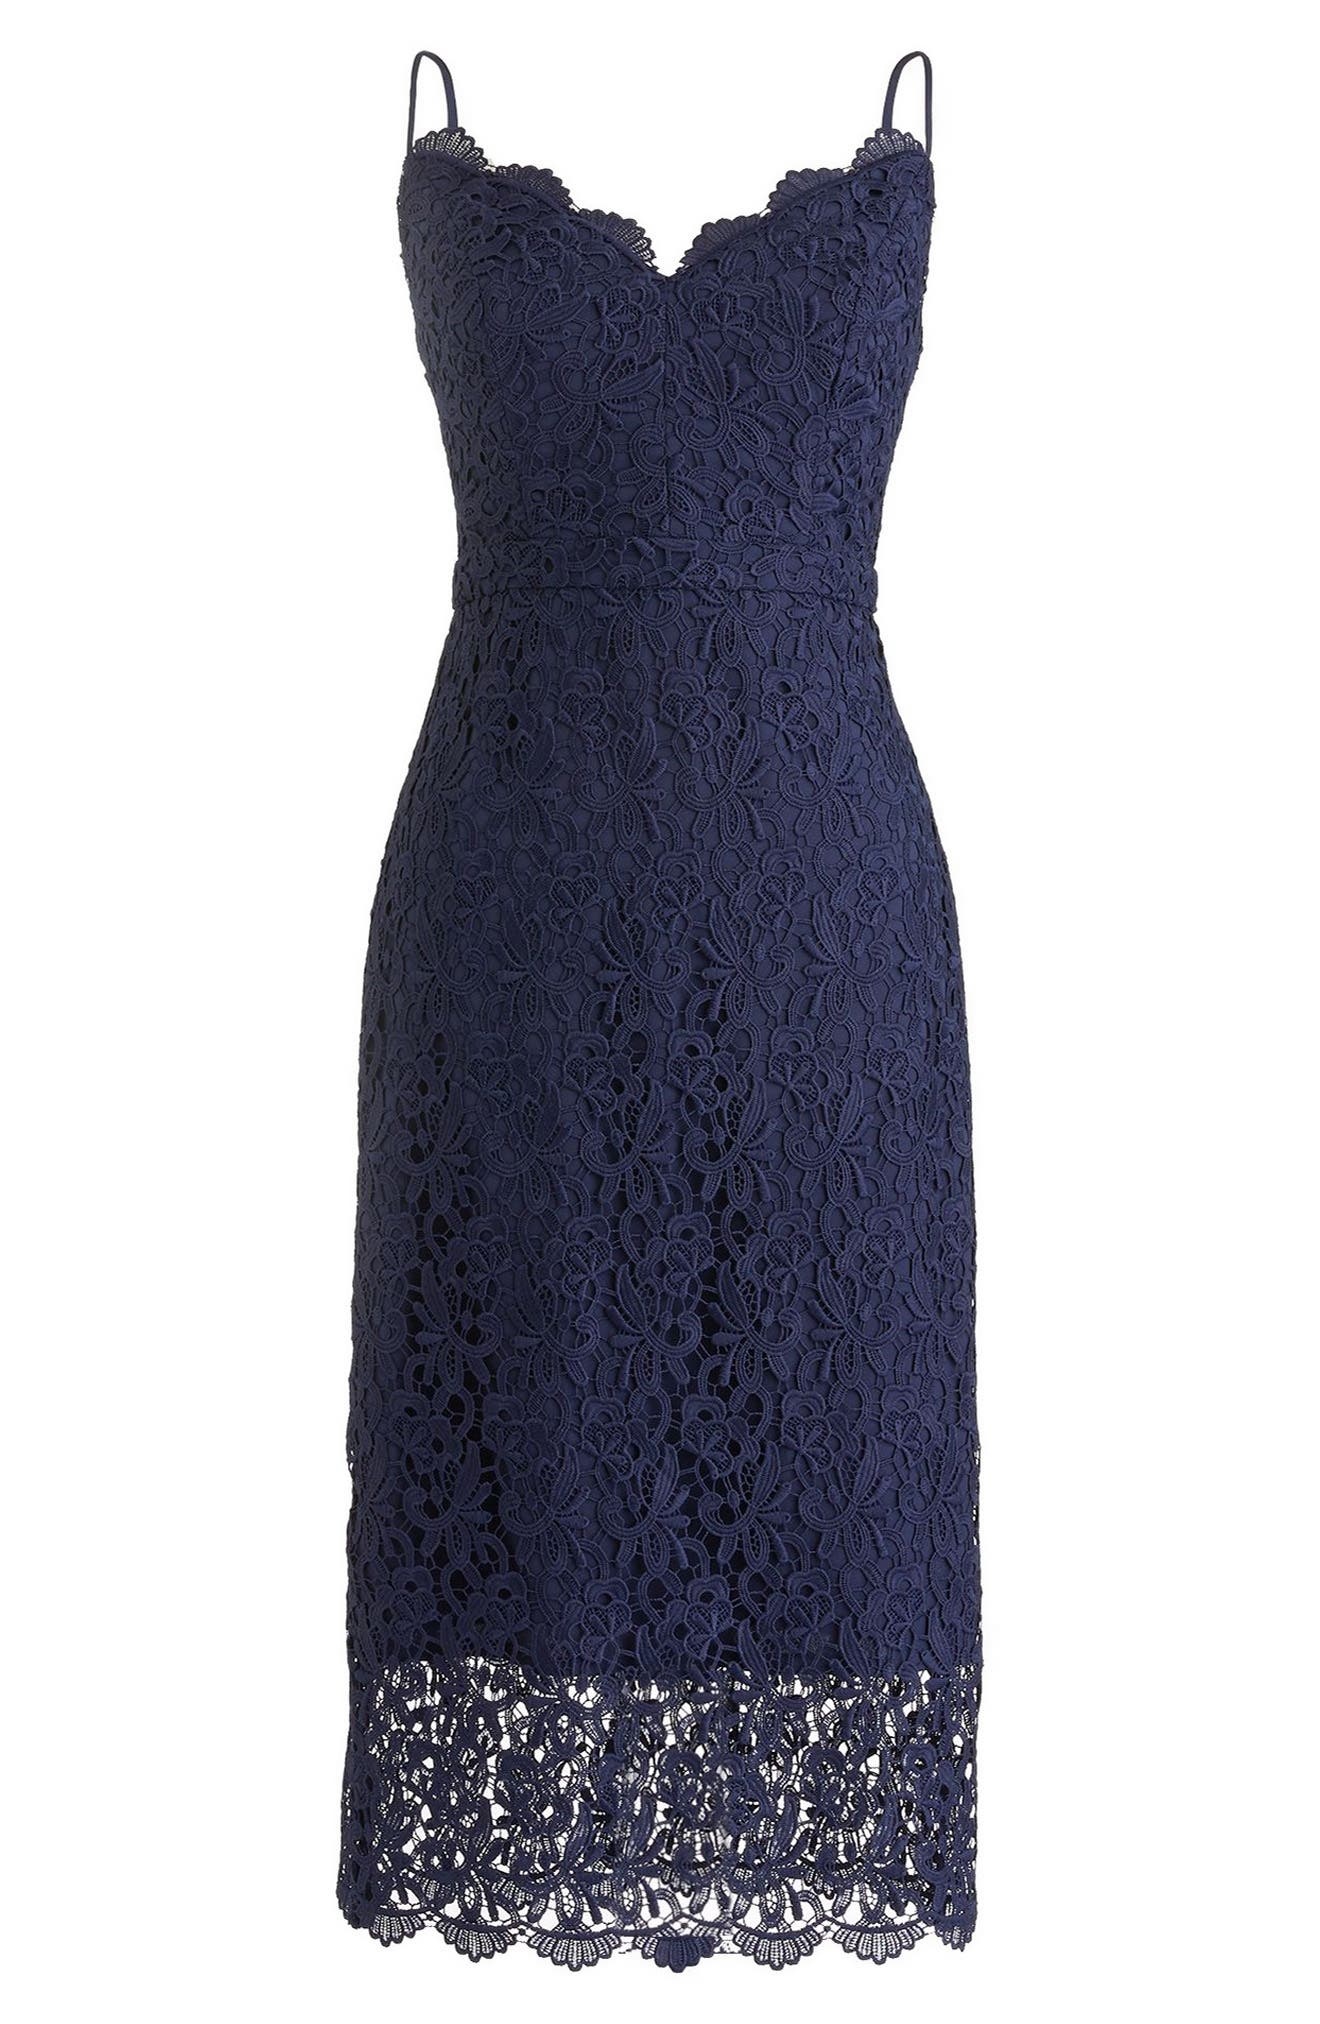 J.Crew Guipure Lace Spaghetti Strap Dress,                             Main thumbnail 1, color,                             Navy